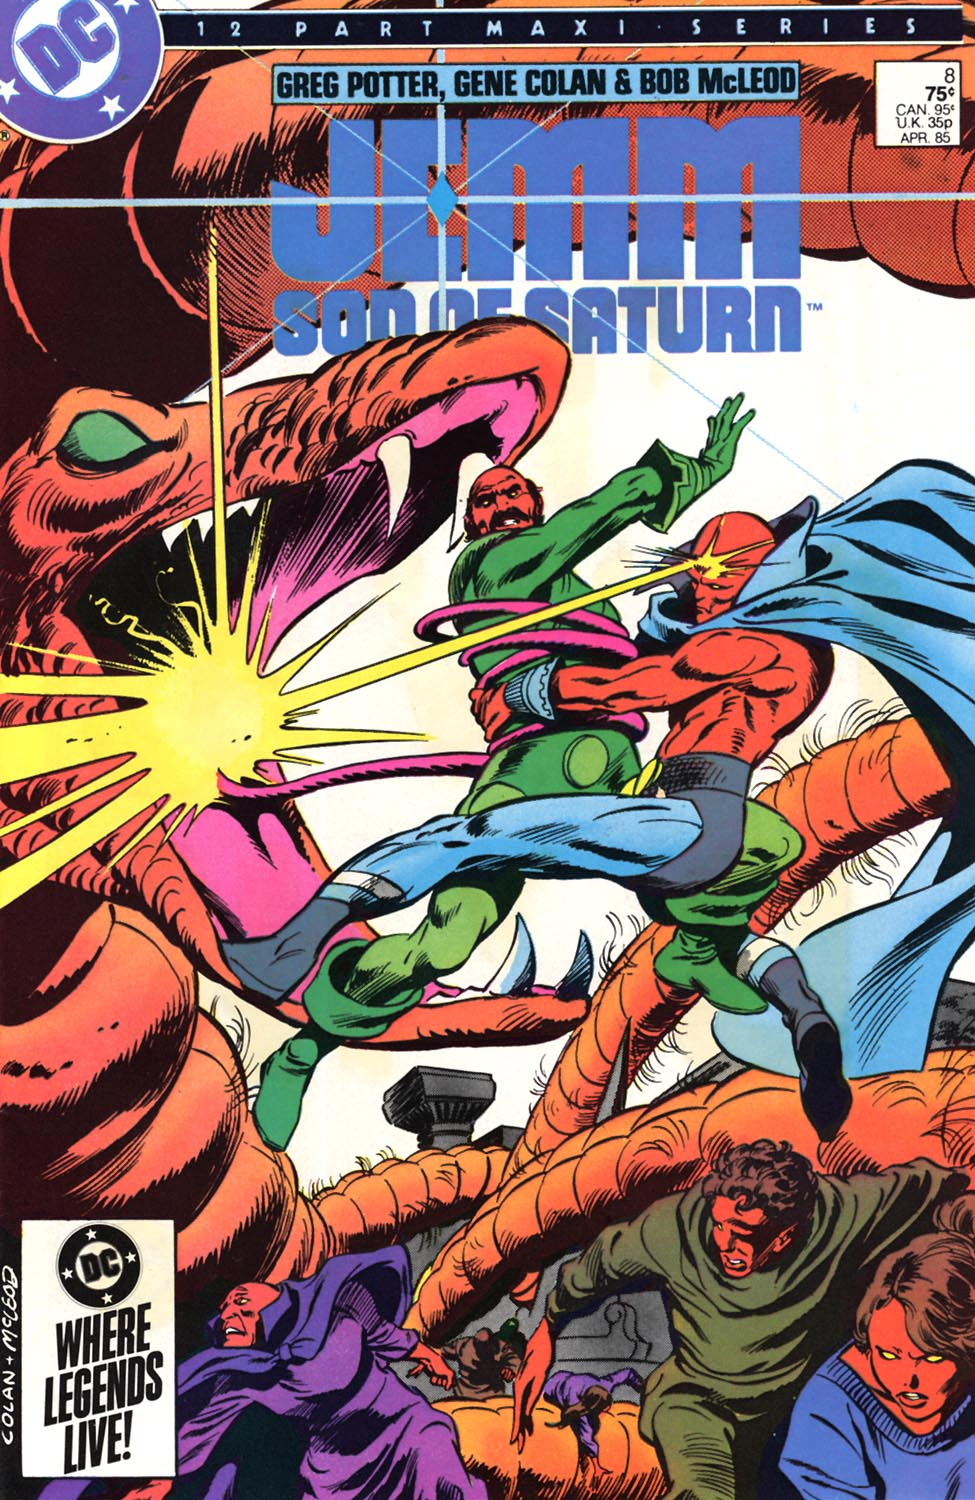 Jemm, Son of Saturn (1984) #8, cover penciled by Gene Colan & inked by Bob McLeod.